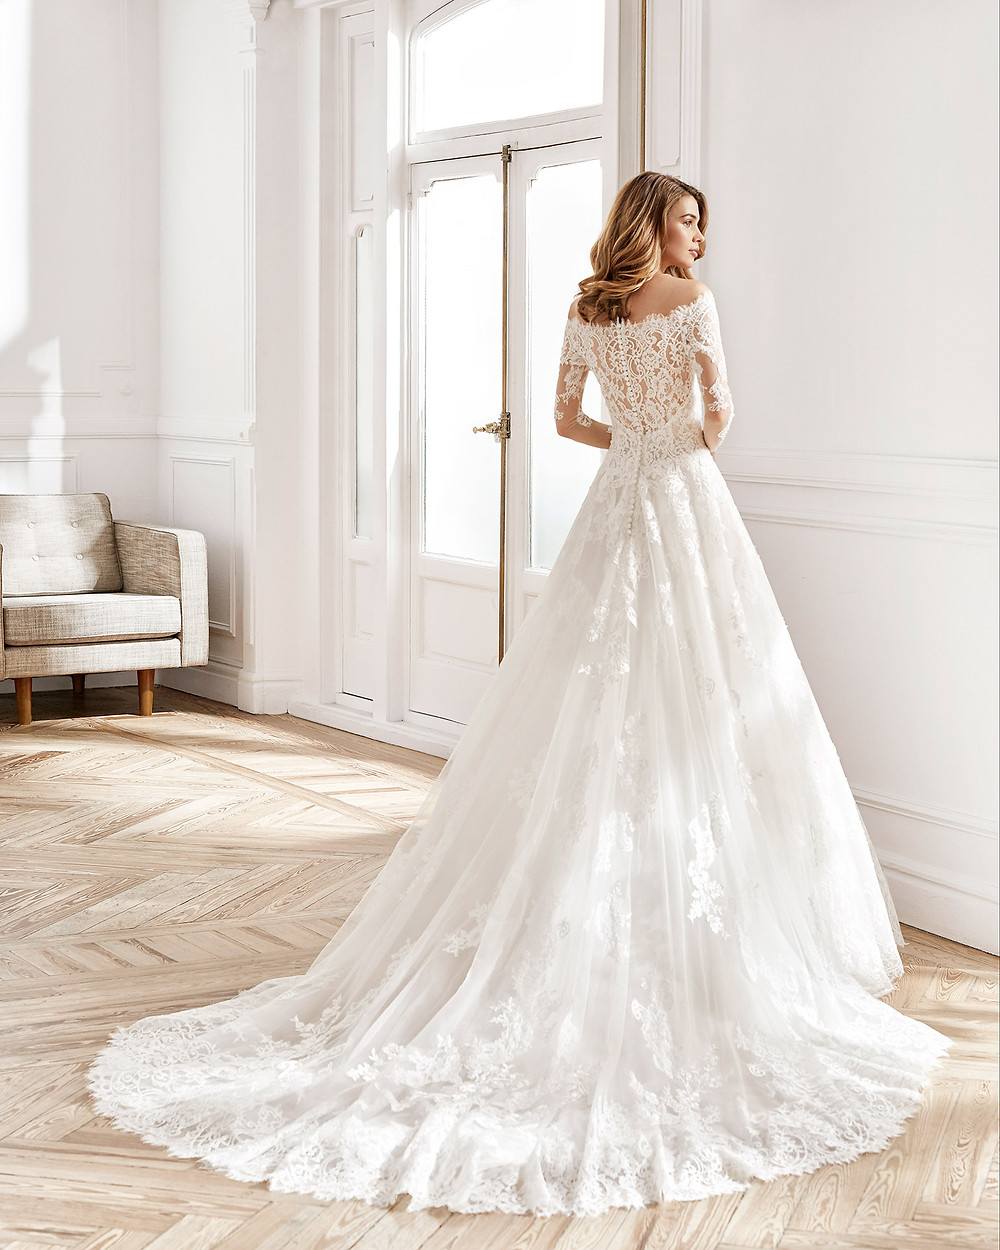 An Aire Barcelona 2020 off the shoulder lace ball gown wedding dress with long illusion sleeves